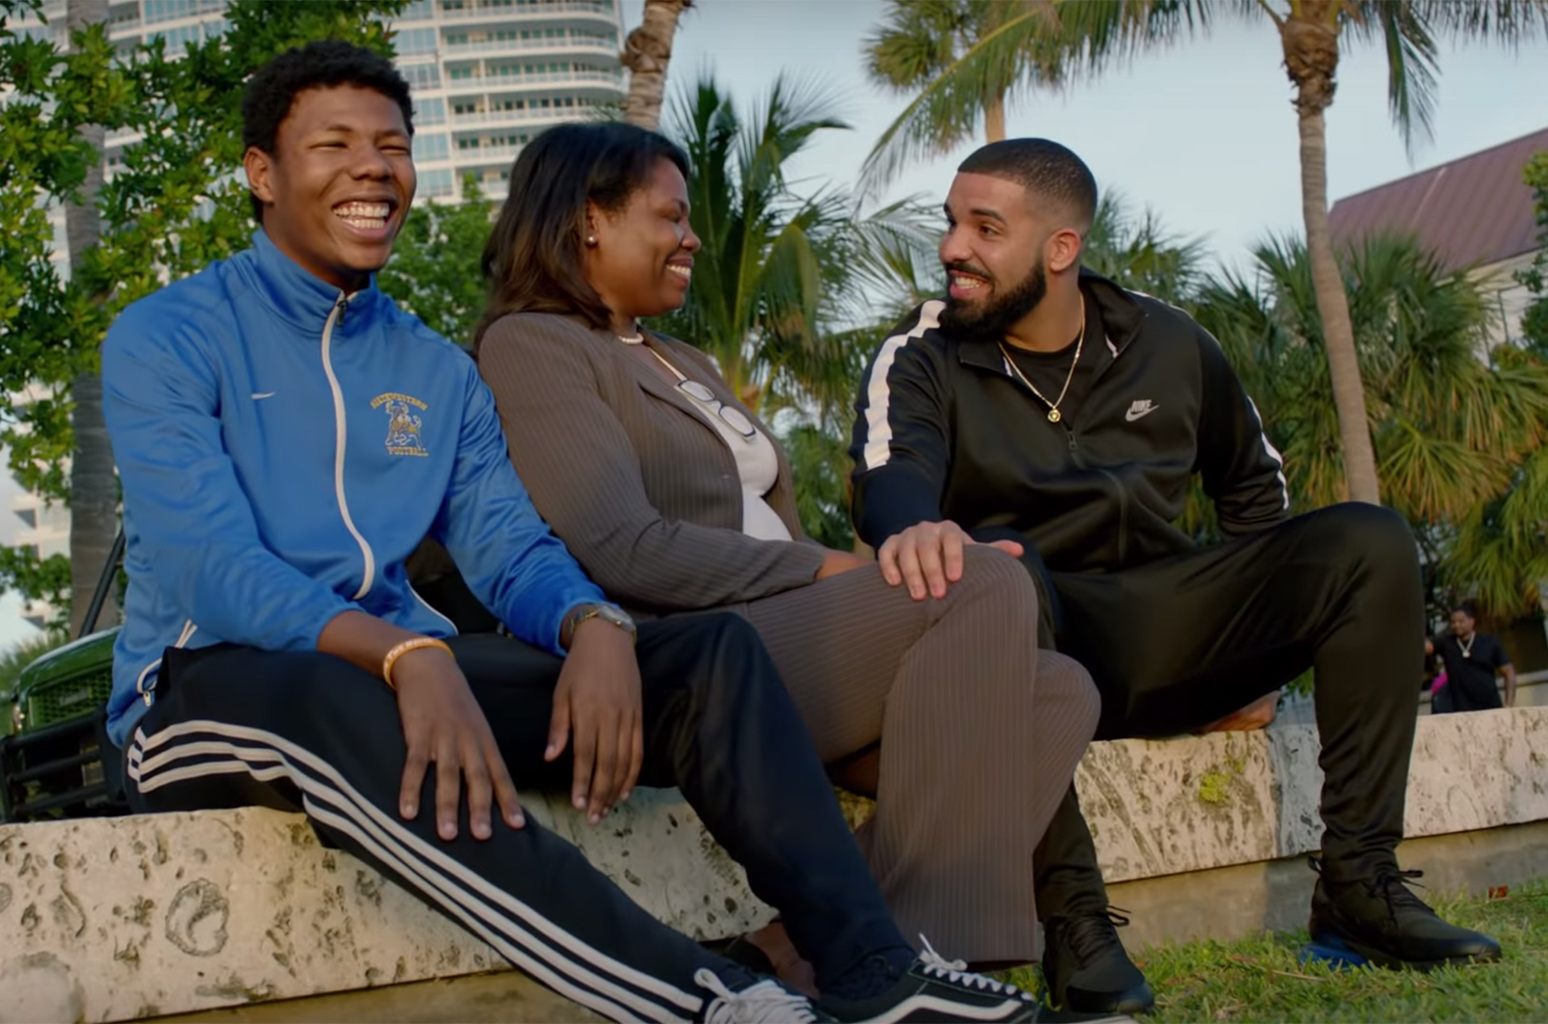 Drake's New Music Video Has Officially Gotten Me Out of My Bad News Funk